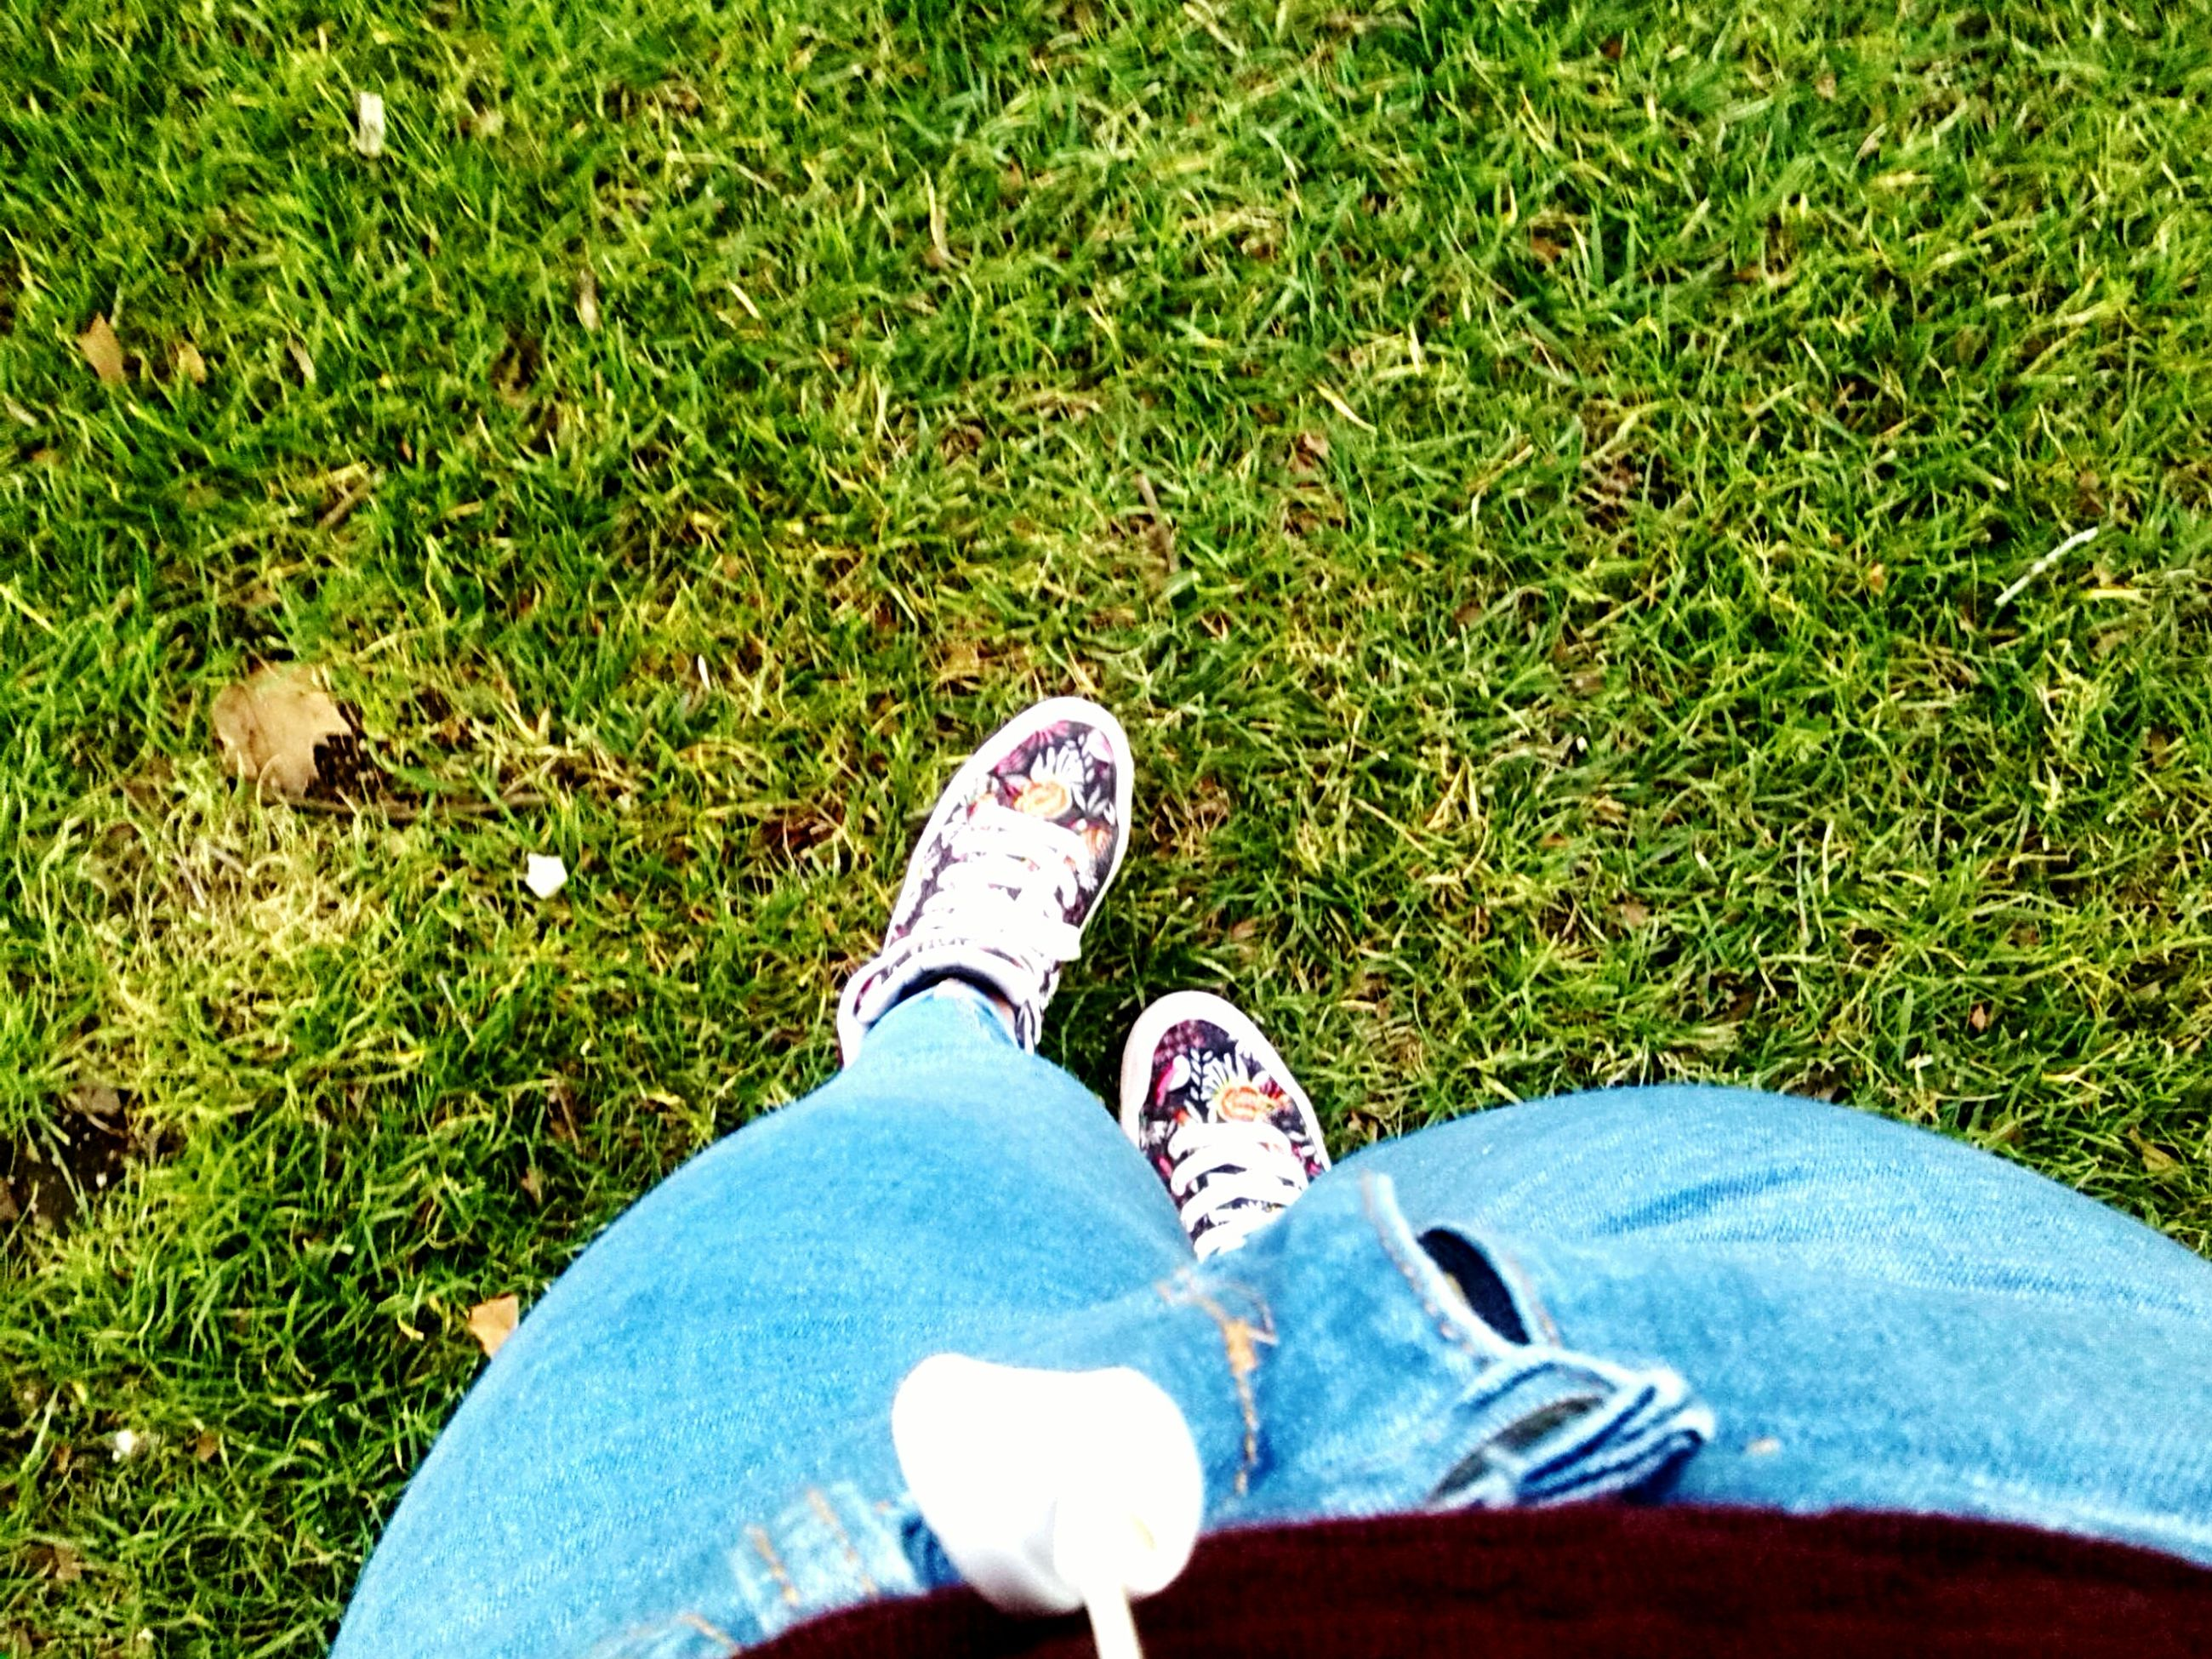 grass, low section, person, shoe, personal perspective, field, grassy, high angle view, lifestyles, footwear, leisure activity, human foot, unrecognizable person, green color, standing, men, part of